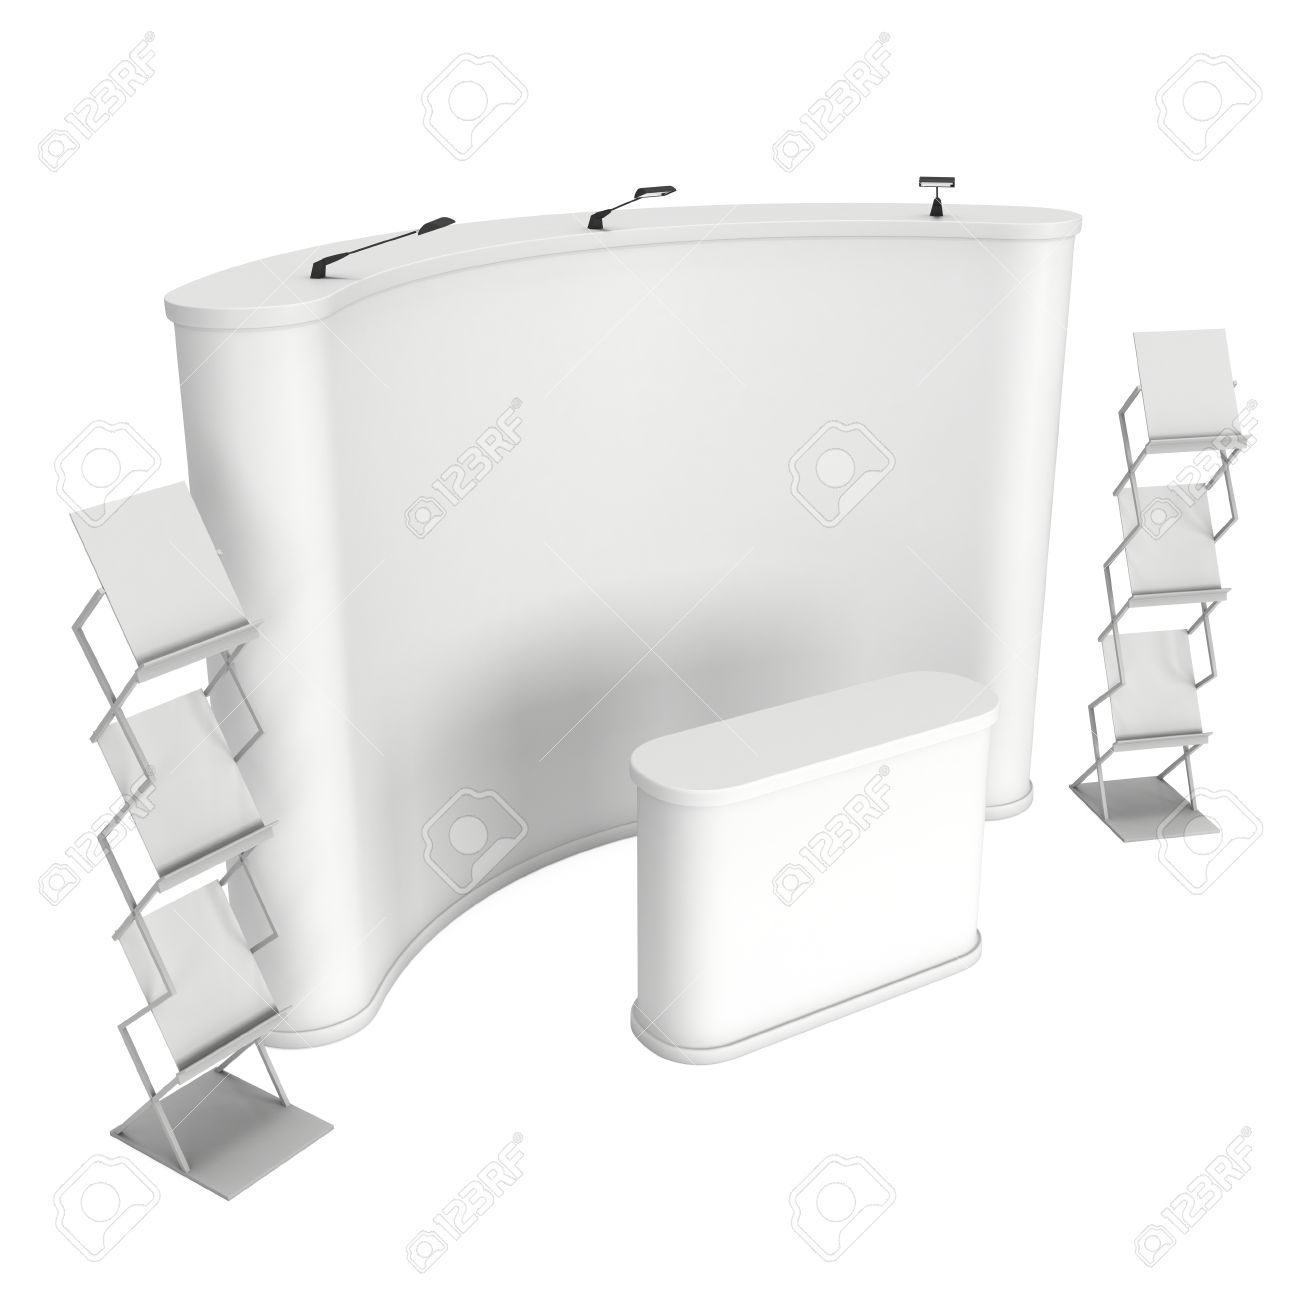 Trade Show Booth And Magazine Rack Stand For Magazines White Stock Photo Picture And Royalty Free Image Image 51289286